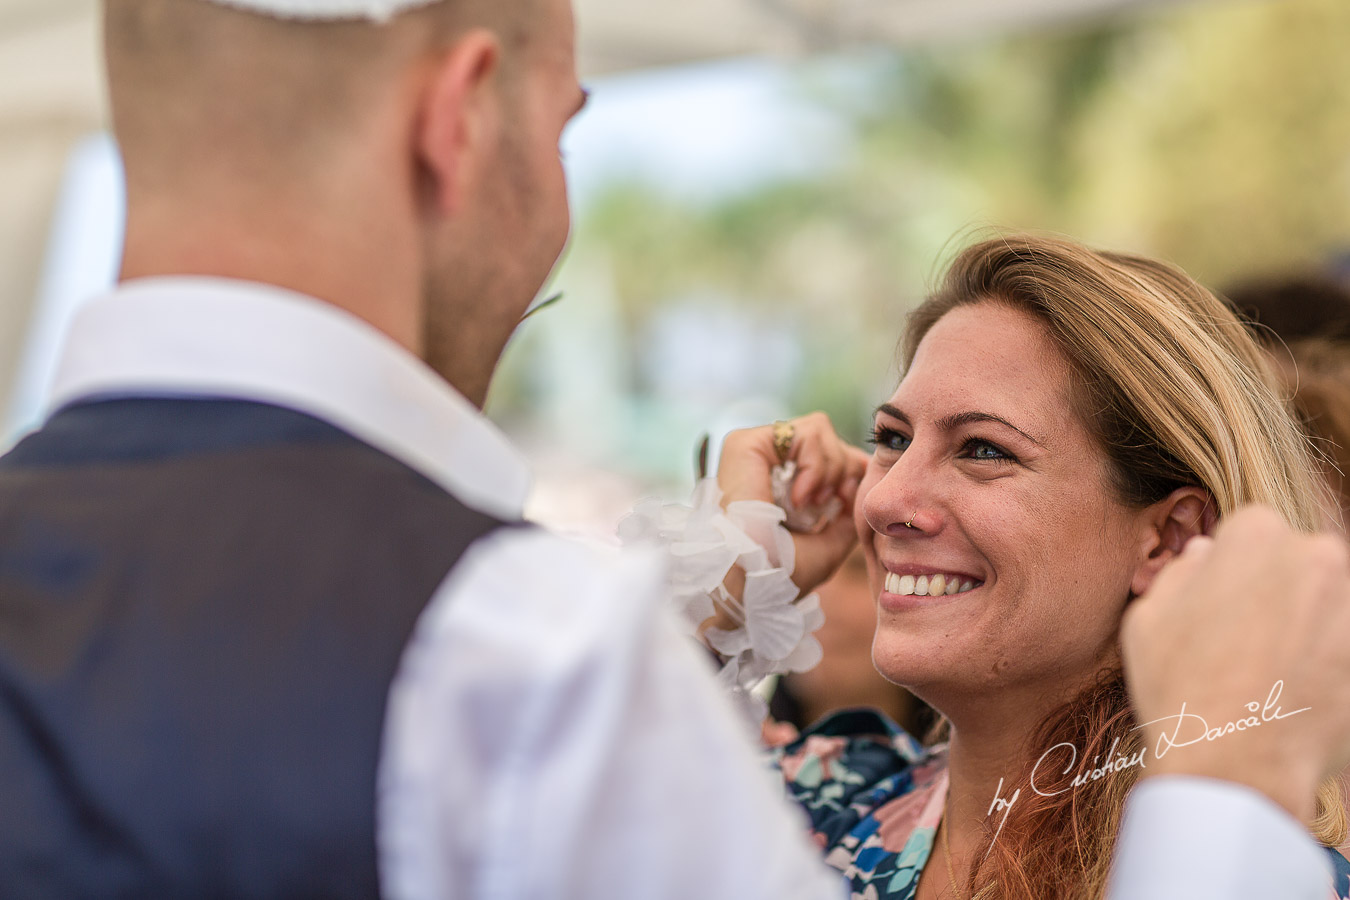 Moments captured at a Jewish Wedding Ceremony in Cyprus.